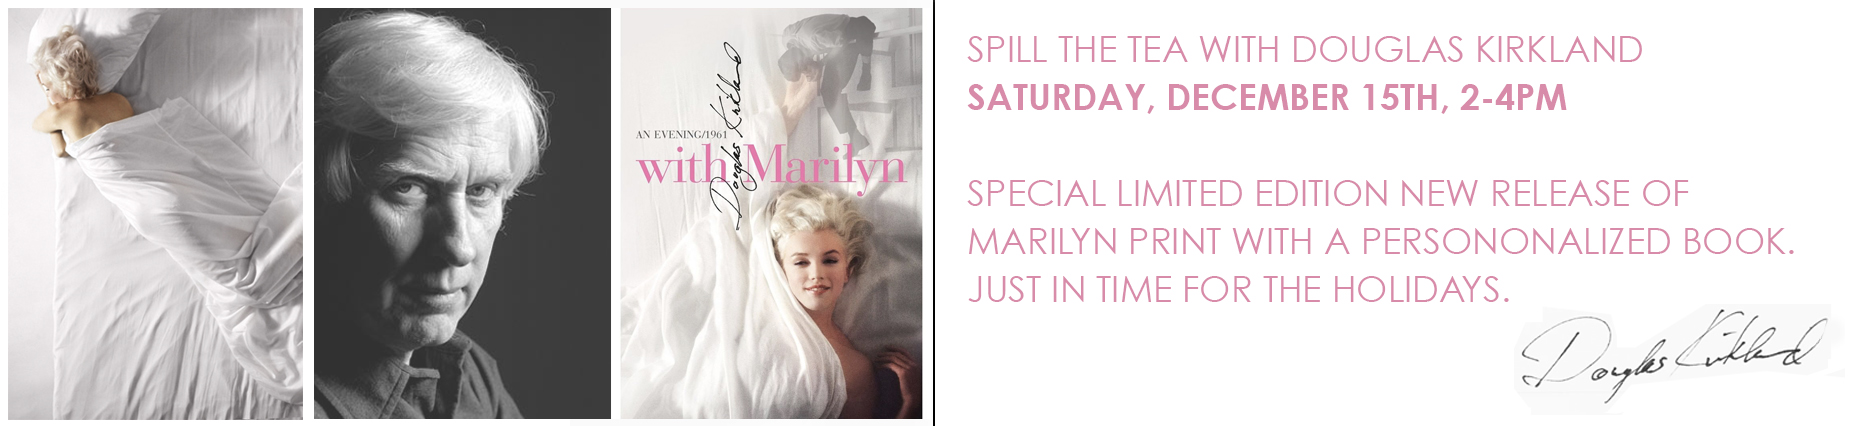 NewsBanner-Marilyn